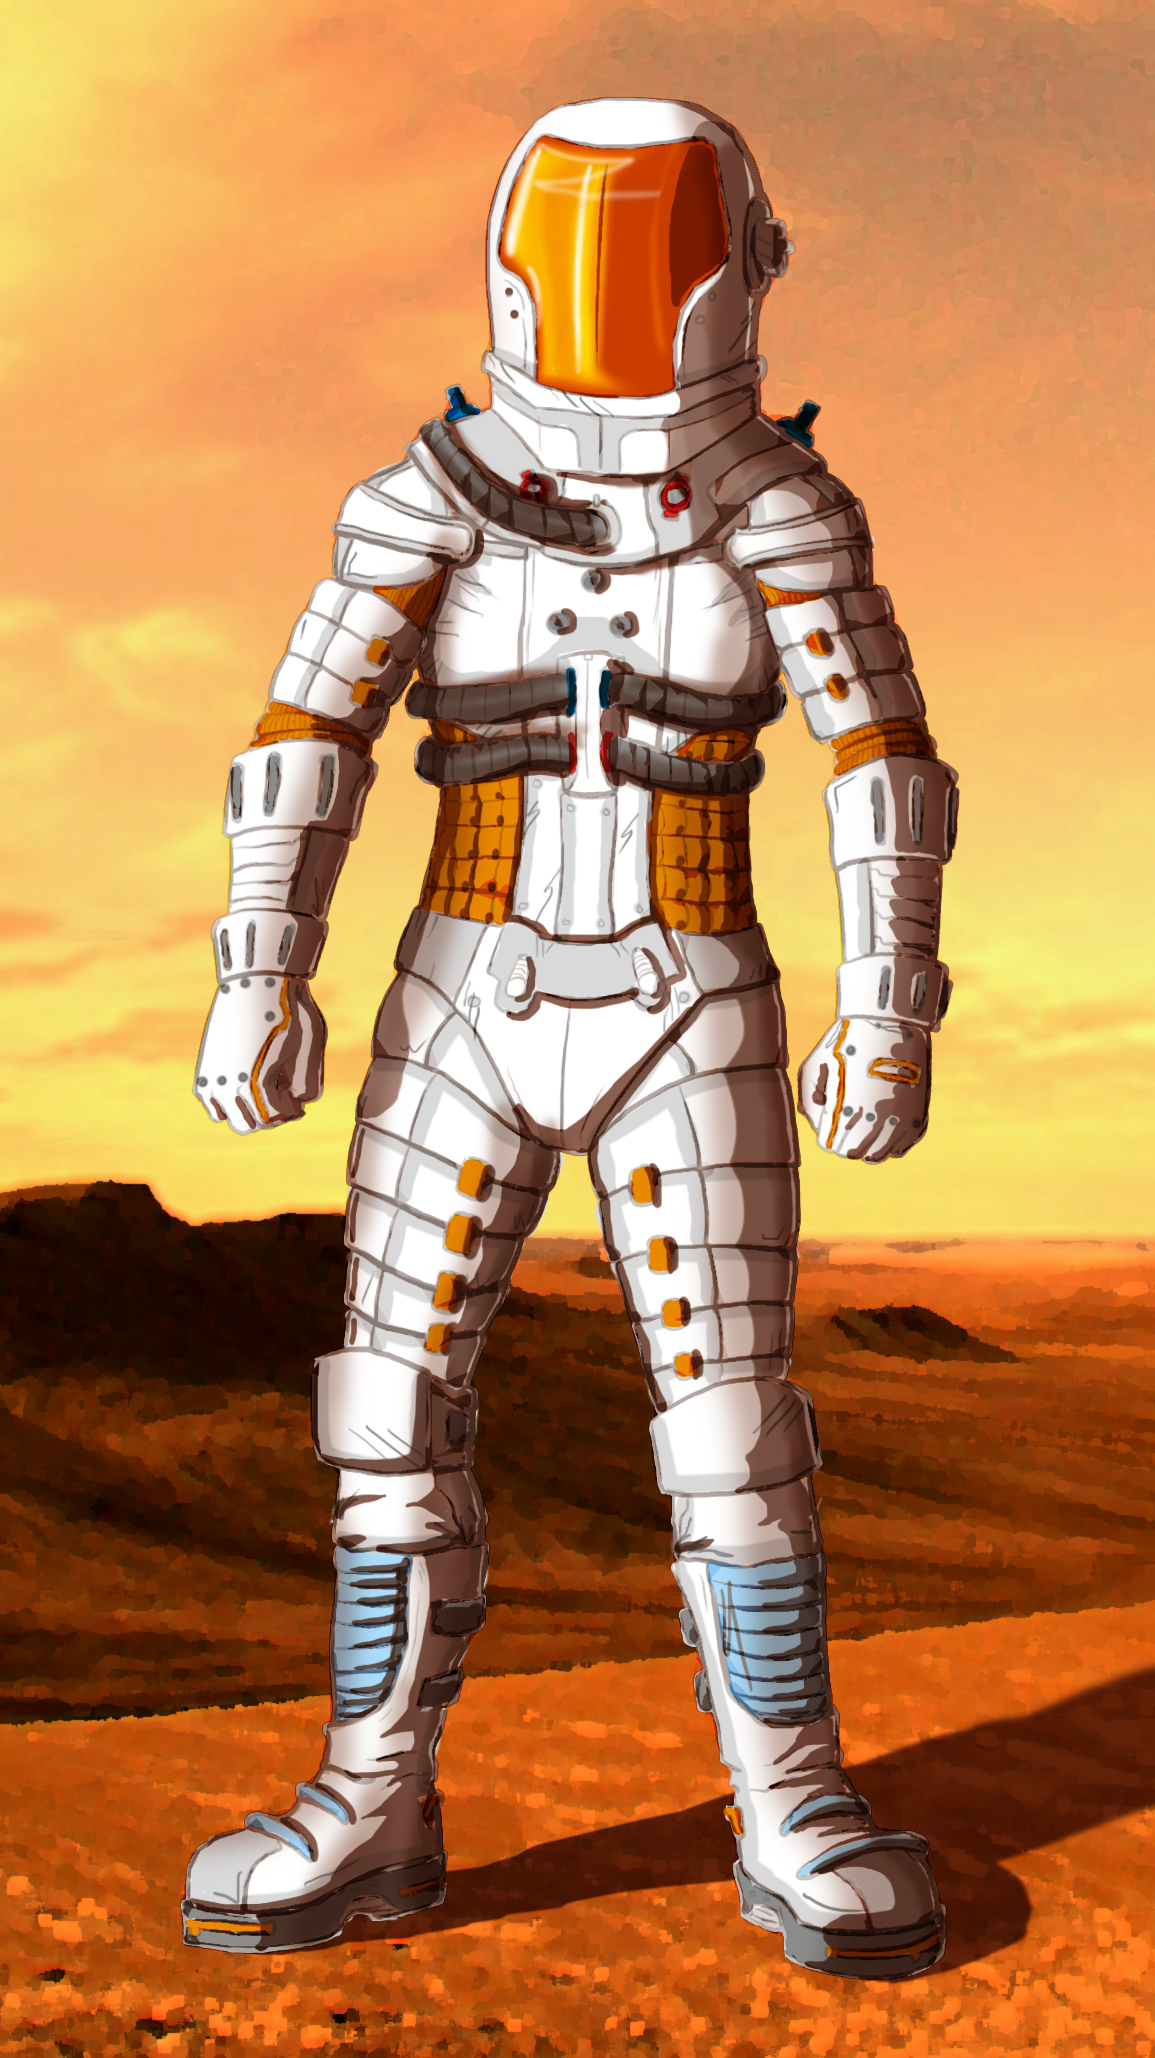 A potential design for the Mars space suits